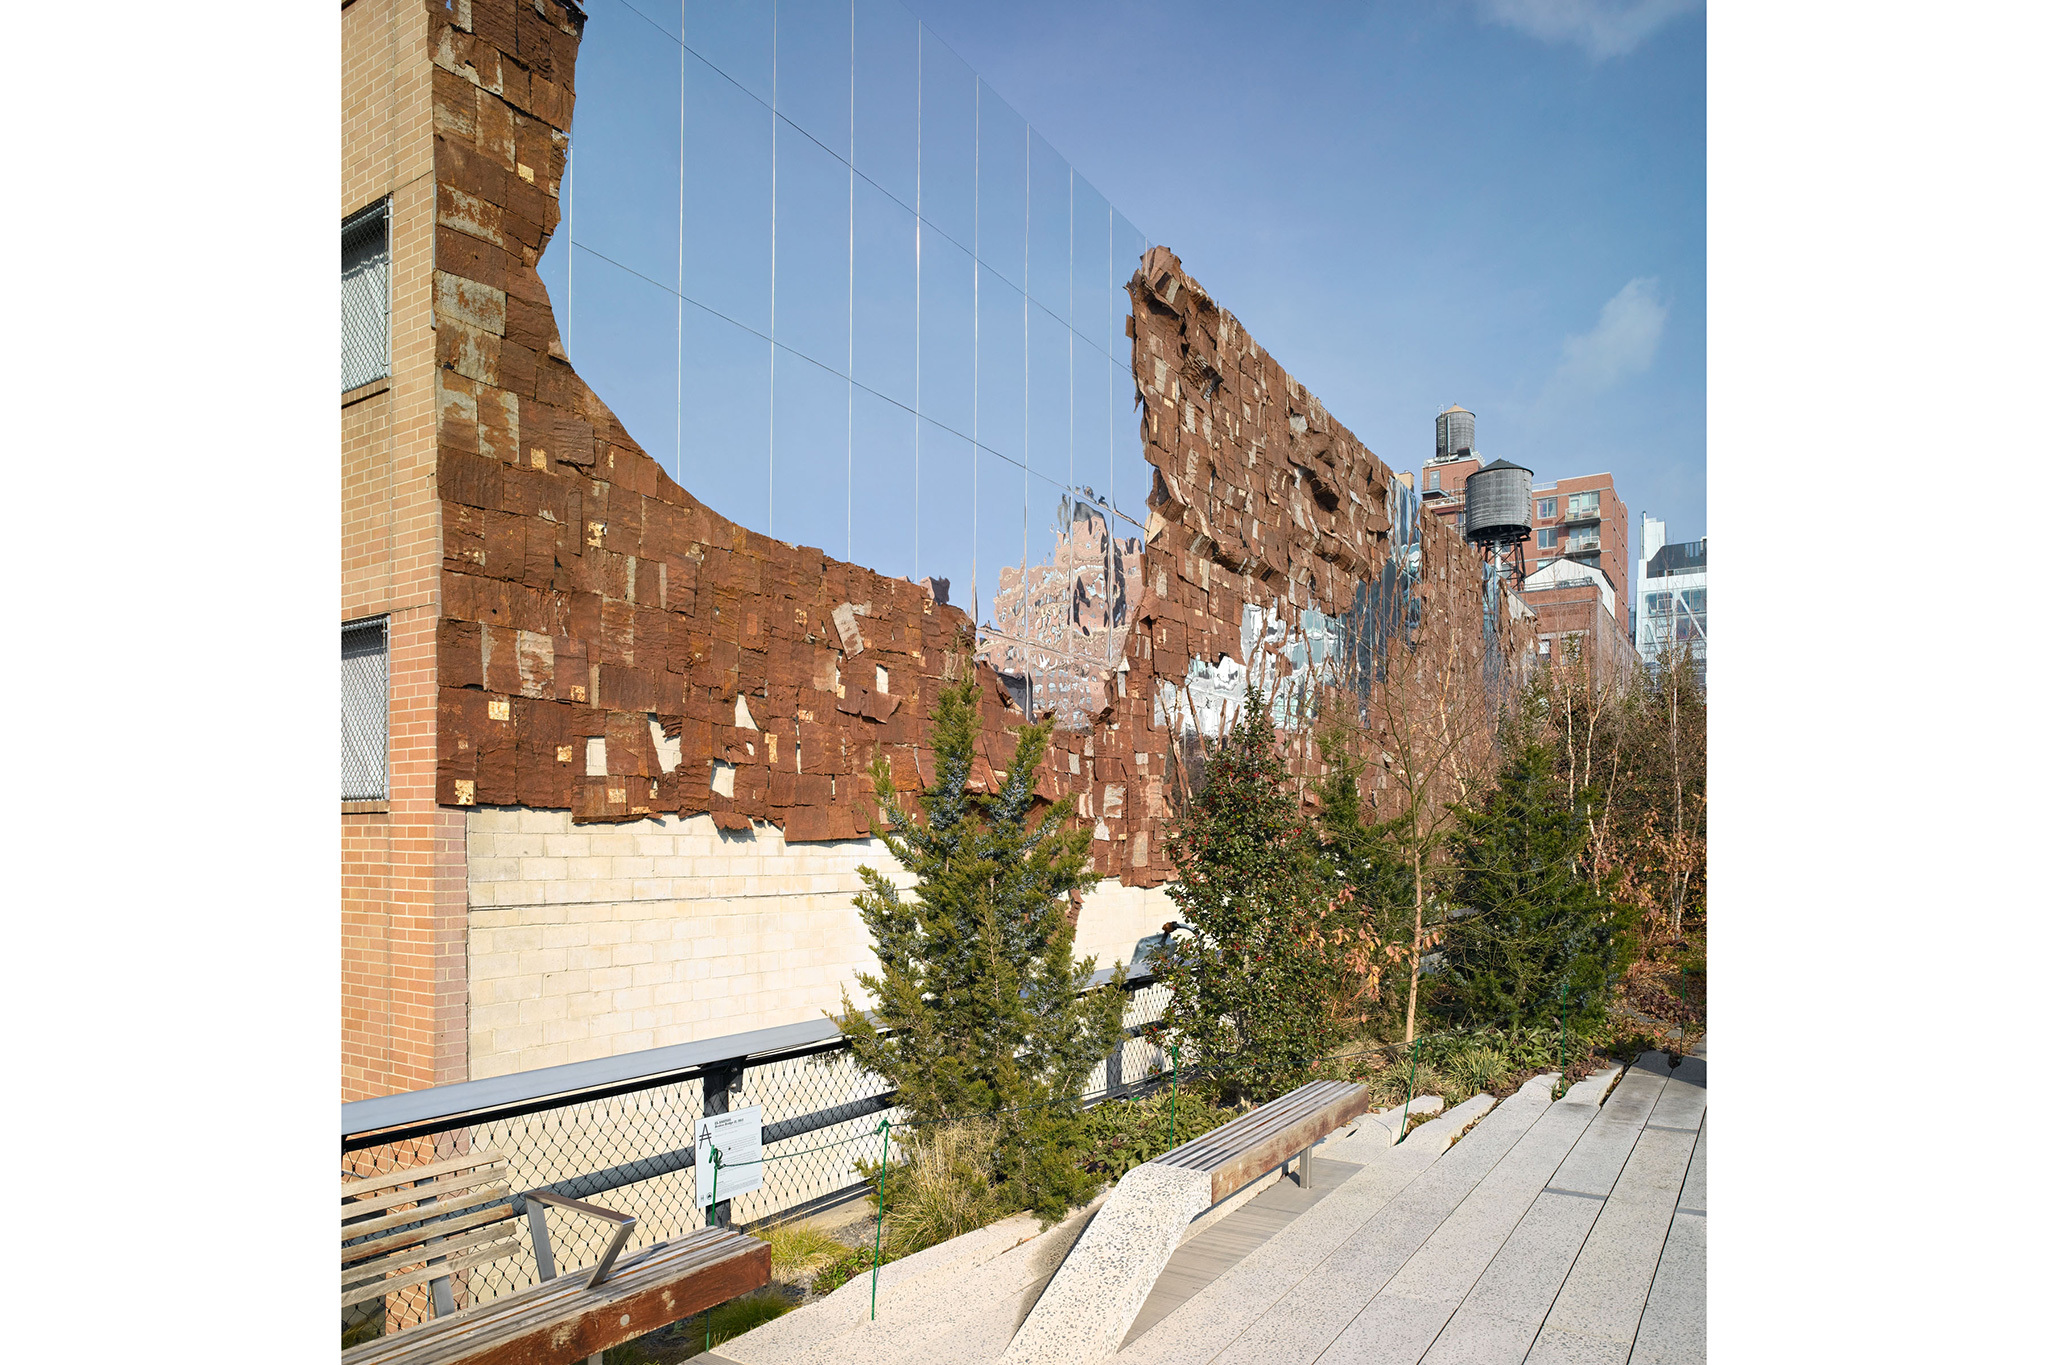 Photograph: Austin Kennedy/Paper Scenery; courtesy the artist, Jack Shainman Gallery and Friends of the High Line